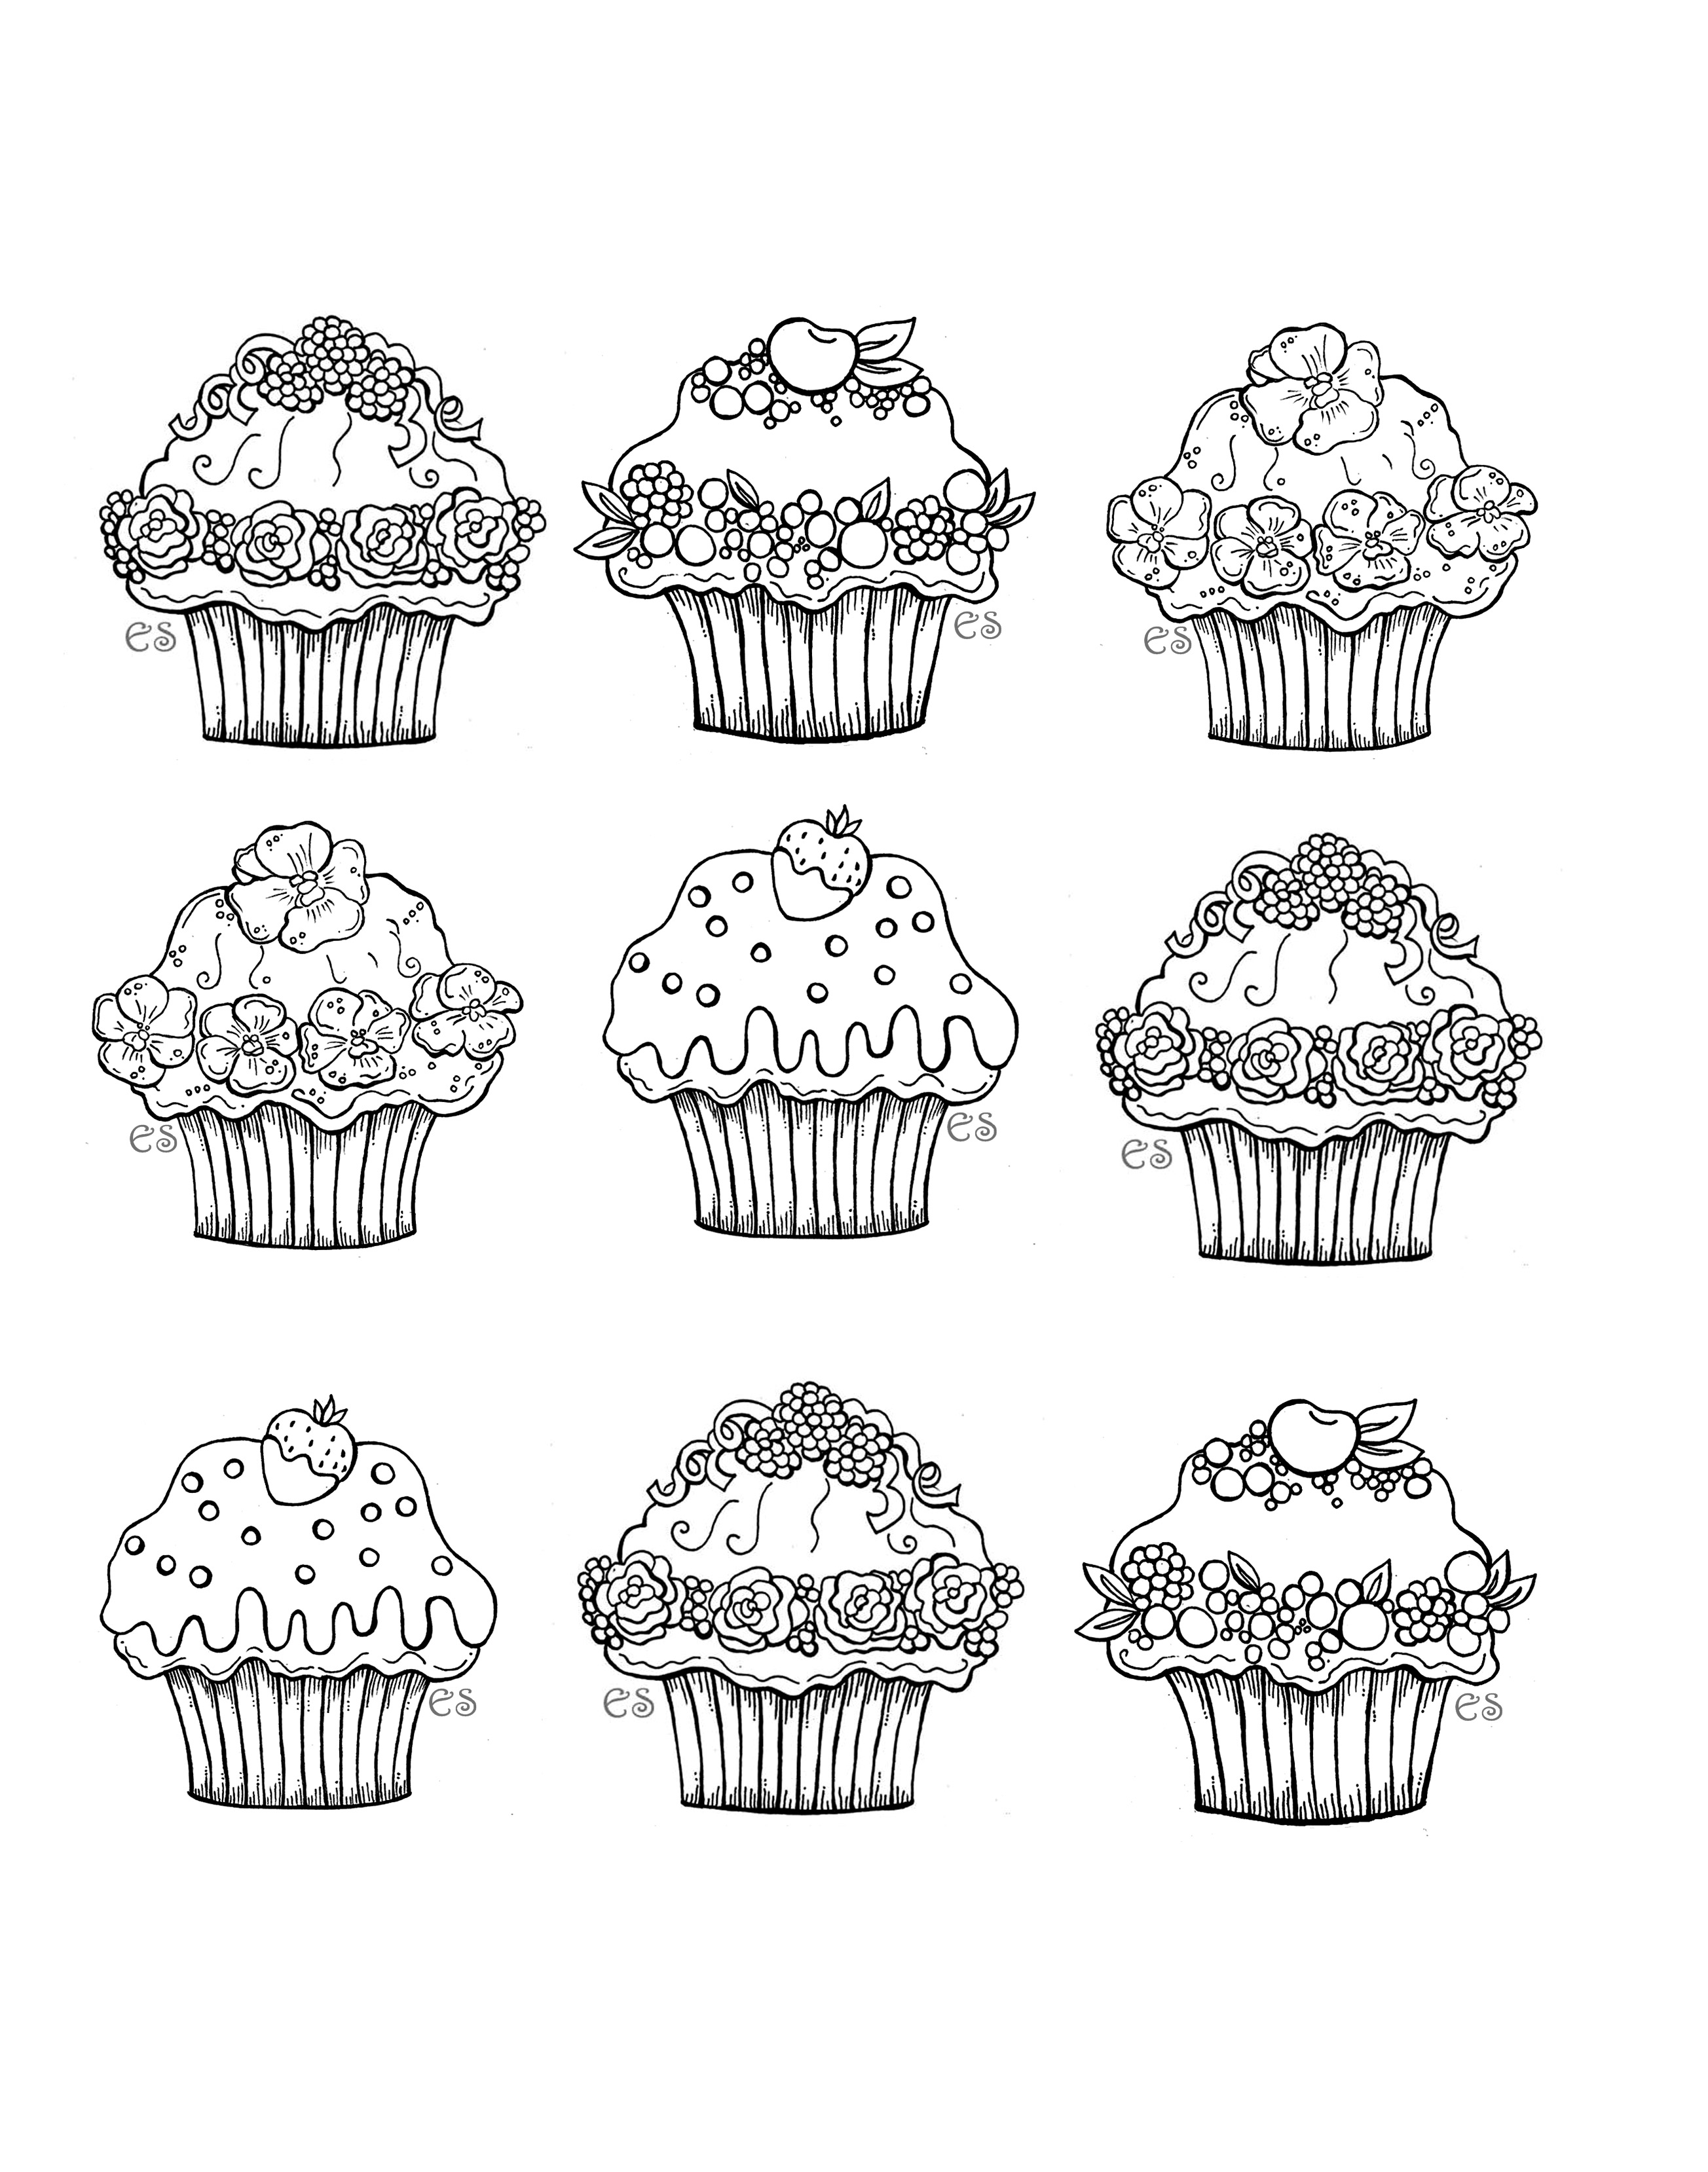 Six cute cupcakes - Cupcakes Adult Coloring Pages